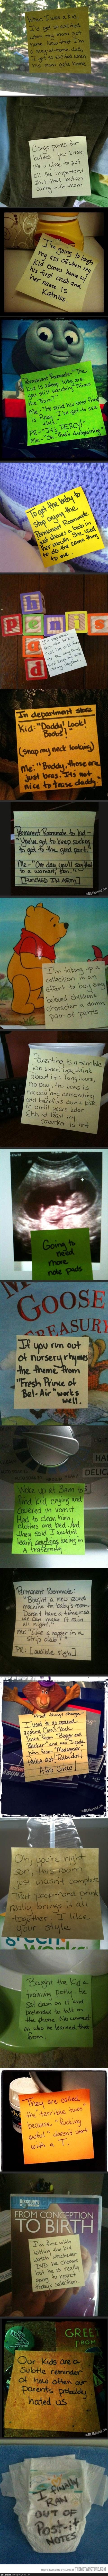 post-it notes from a stay at home dad, when i read these i laugh so hard i cry